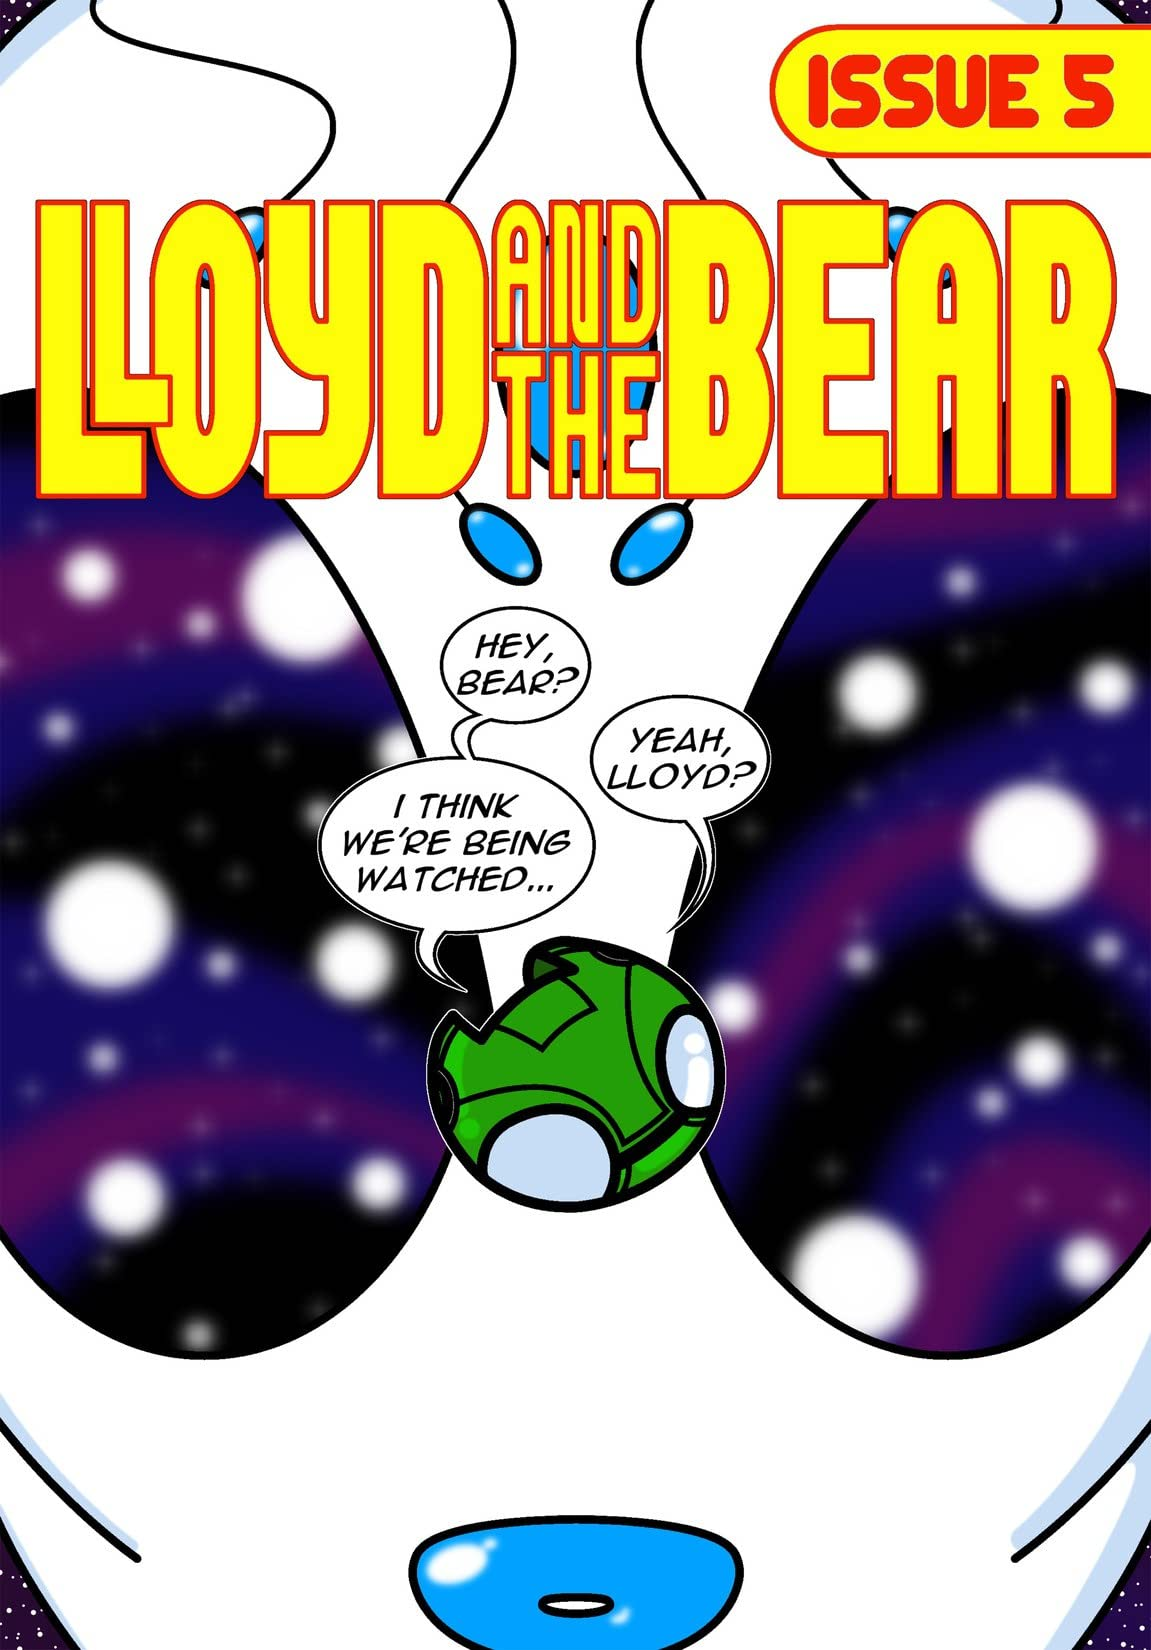 Lloyd and the Bear #5